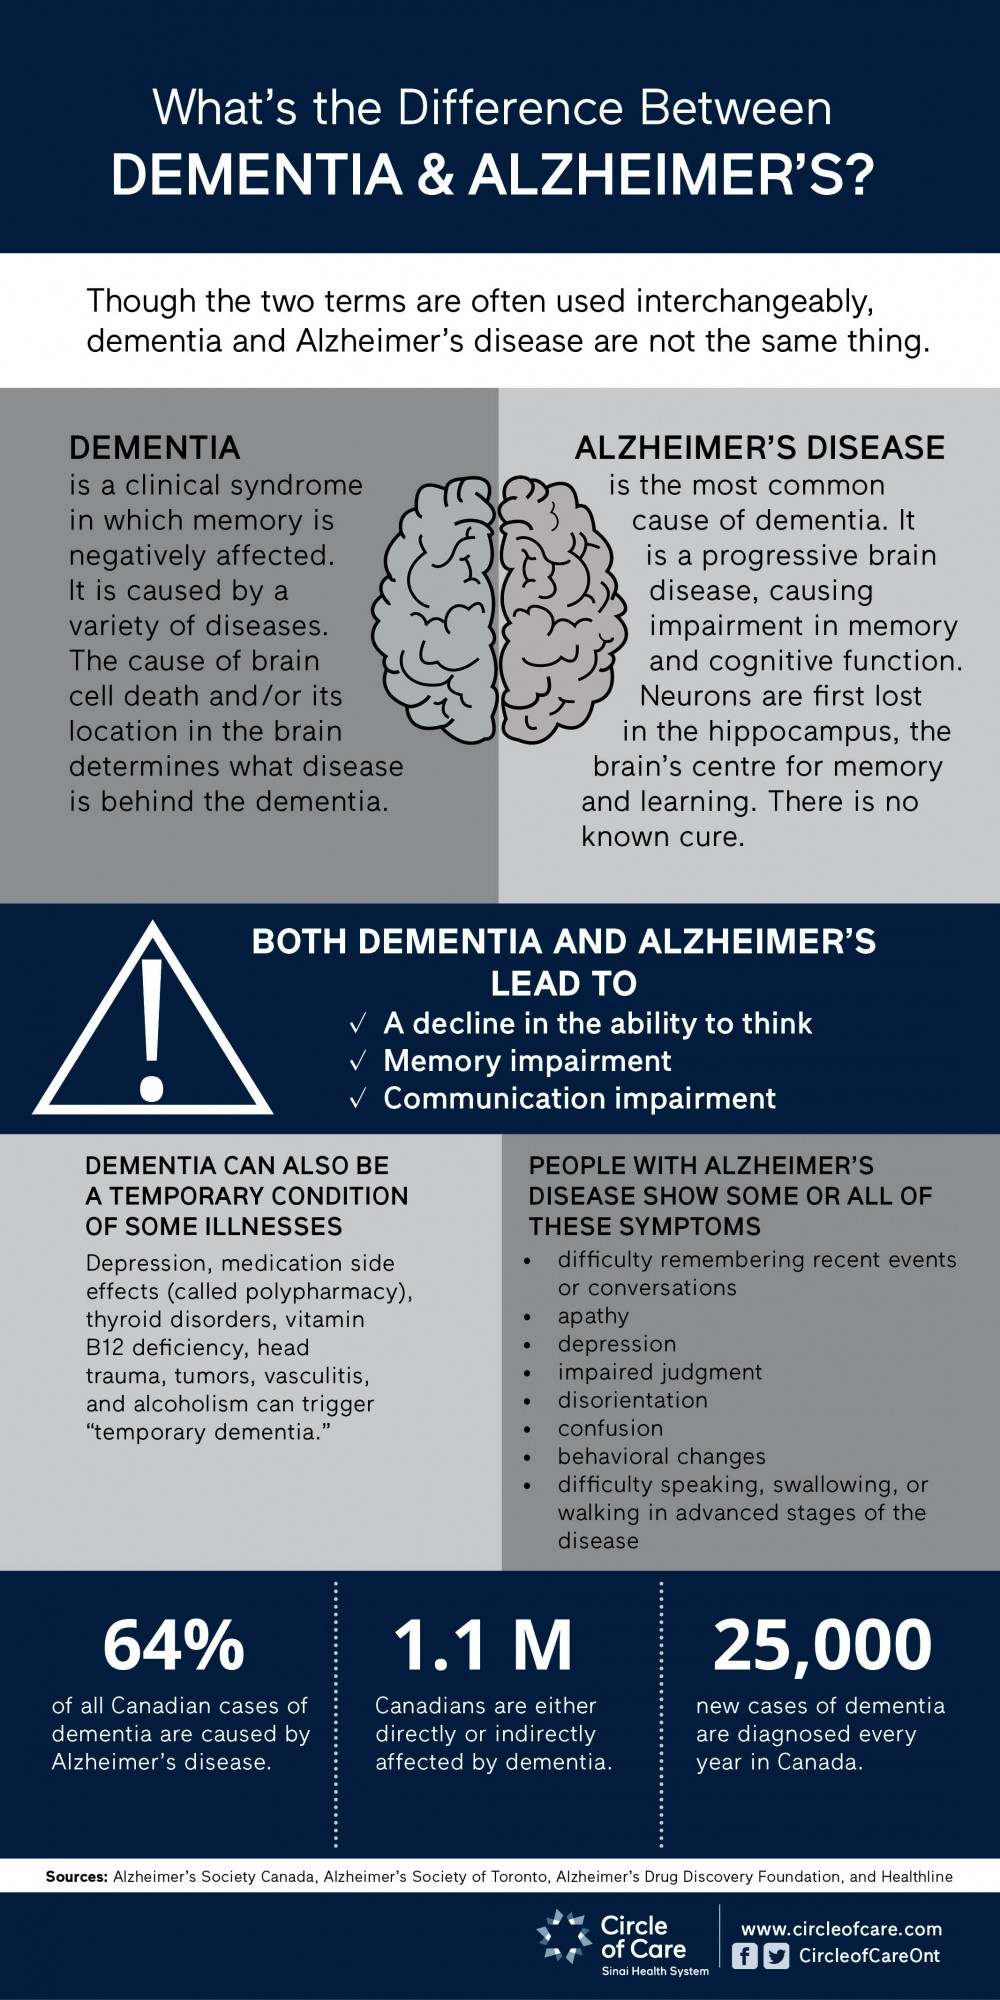 Infographic explaining the difference between Dementia and Alzheimer's disease